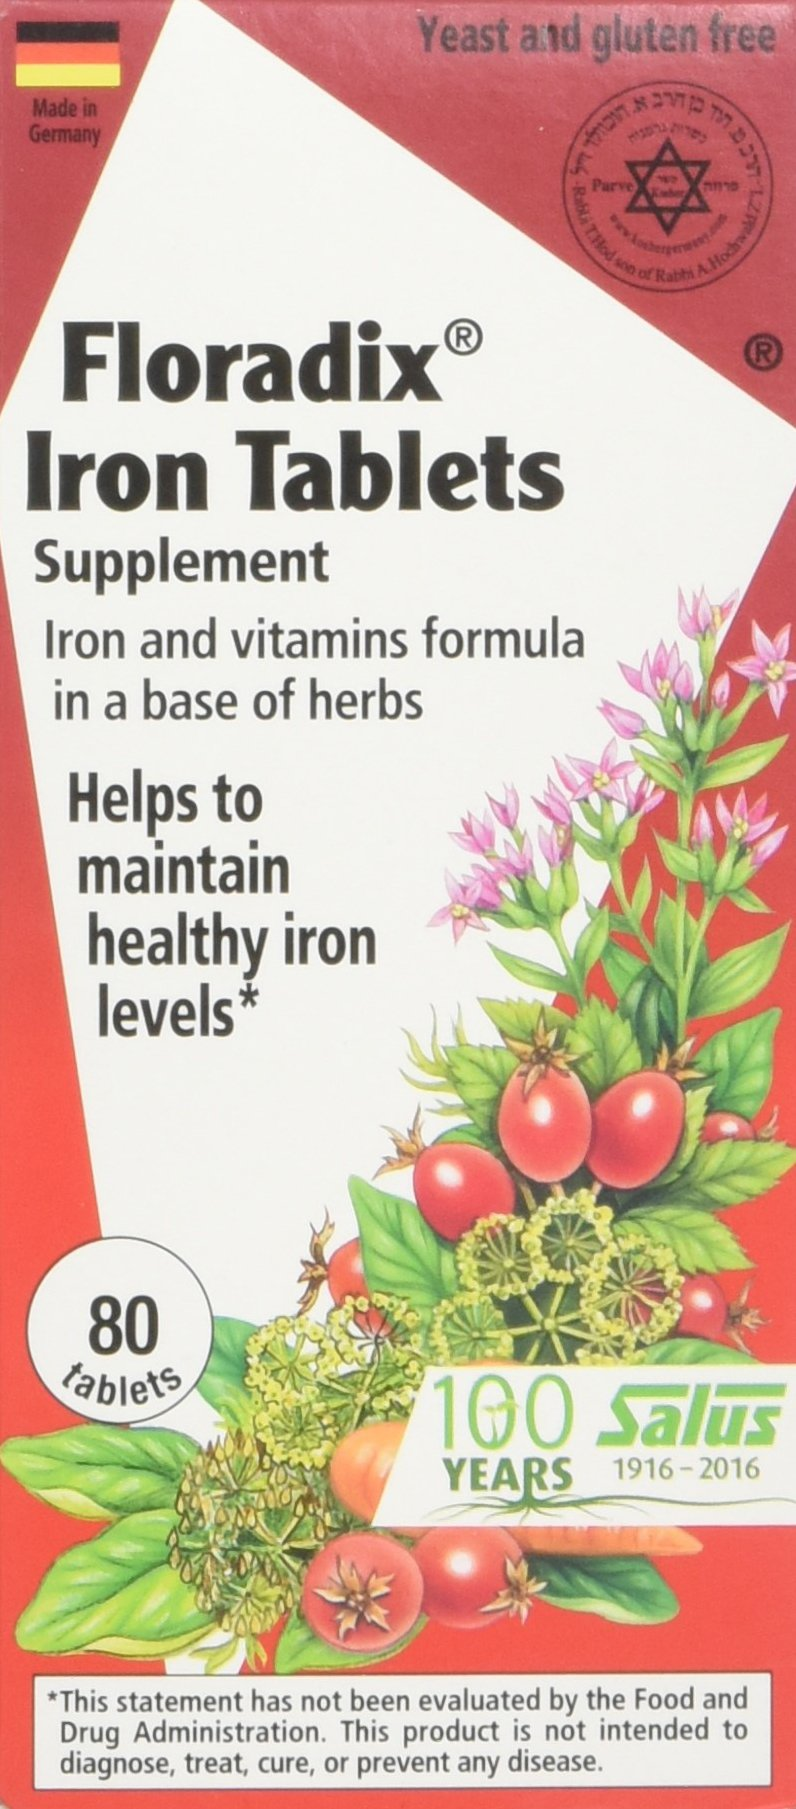 Salus-Haus - Floradix Iron Tablets - 80 count